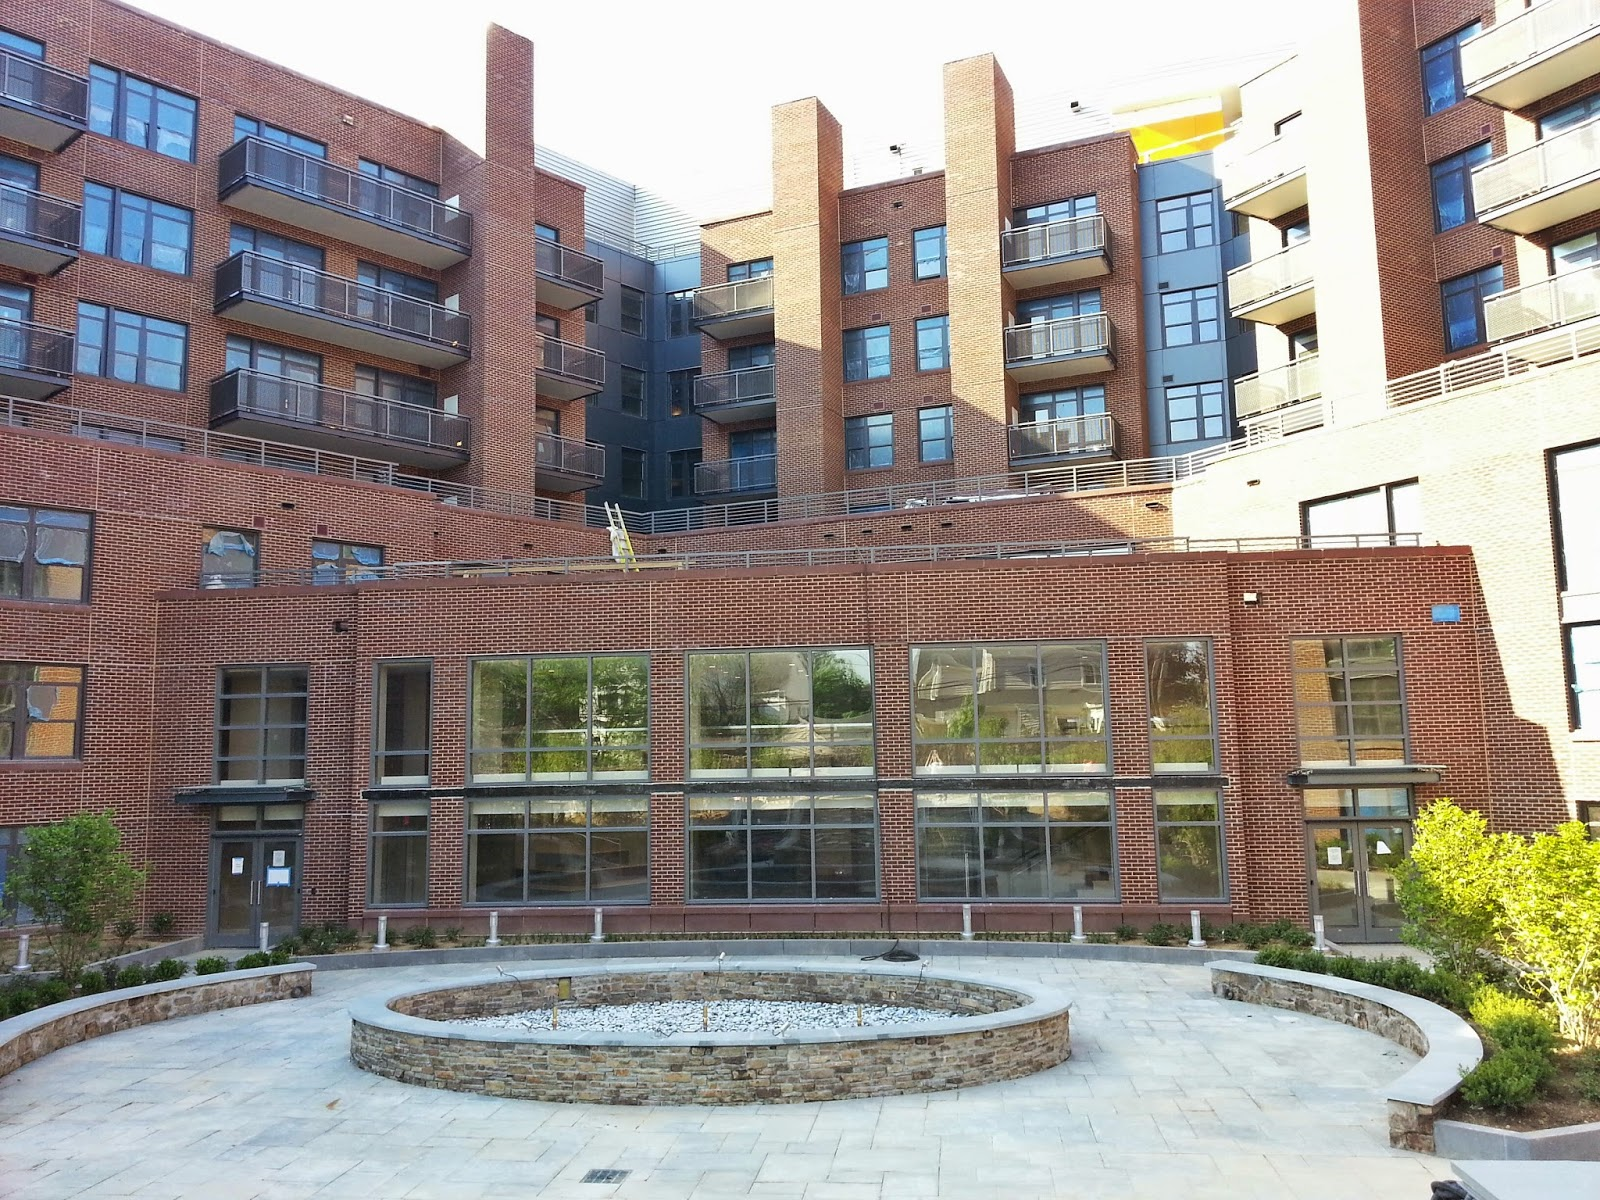 Hereu0027s A Sneak Peek At The Park/plaza Common Area Behind The Flats At  Bethesda Avenue Luxury Apartments. Some Vegetation Is In Place, As Well As  Most Of The ...